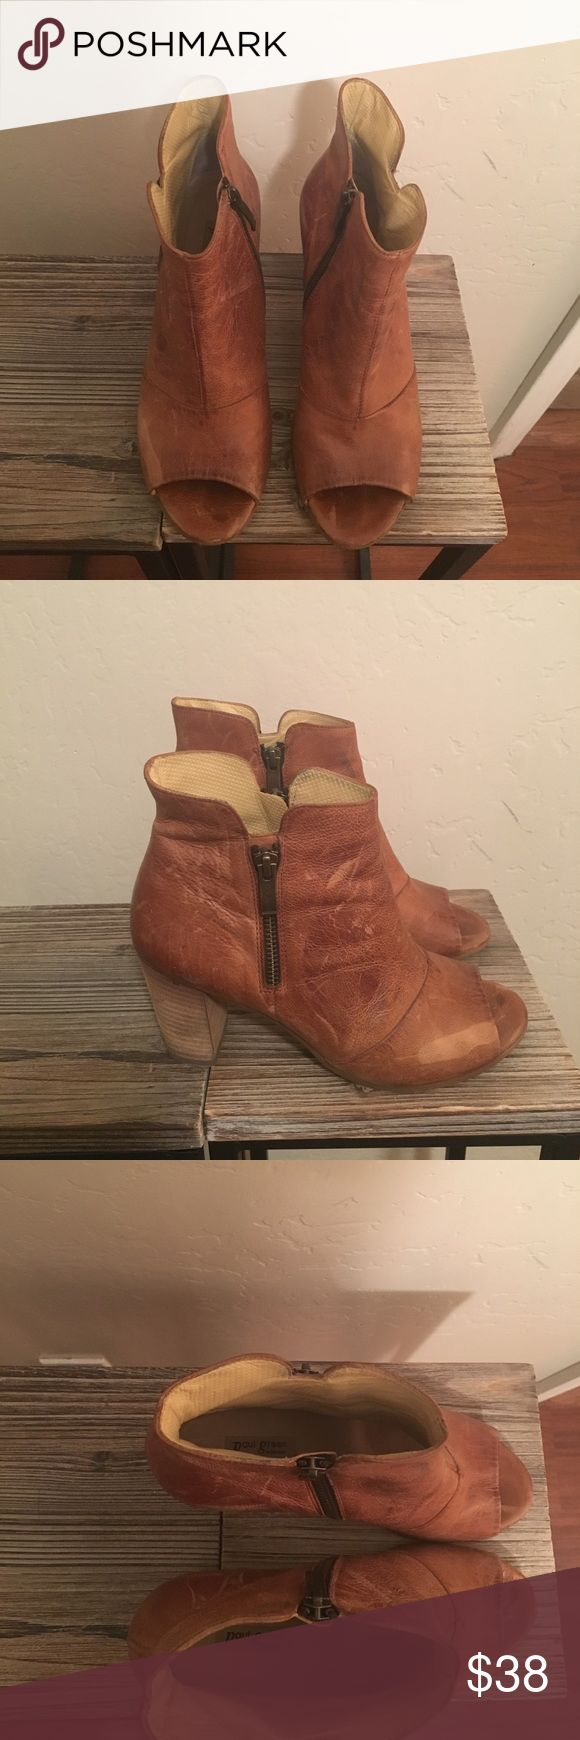 Paul green distressed peep toe booties Distressed genuine leather Paul Green booties Paul Green Shoes Ankle Boots & Booties